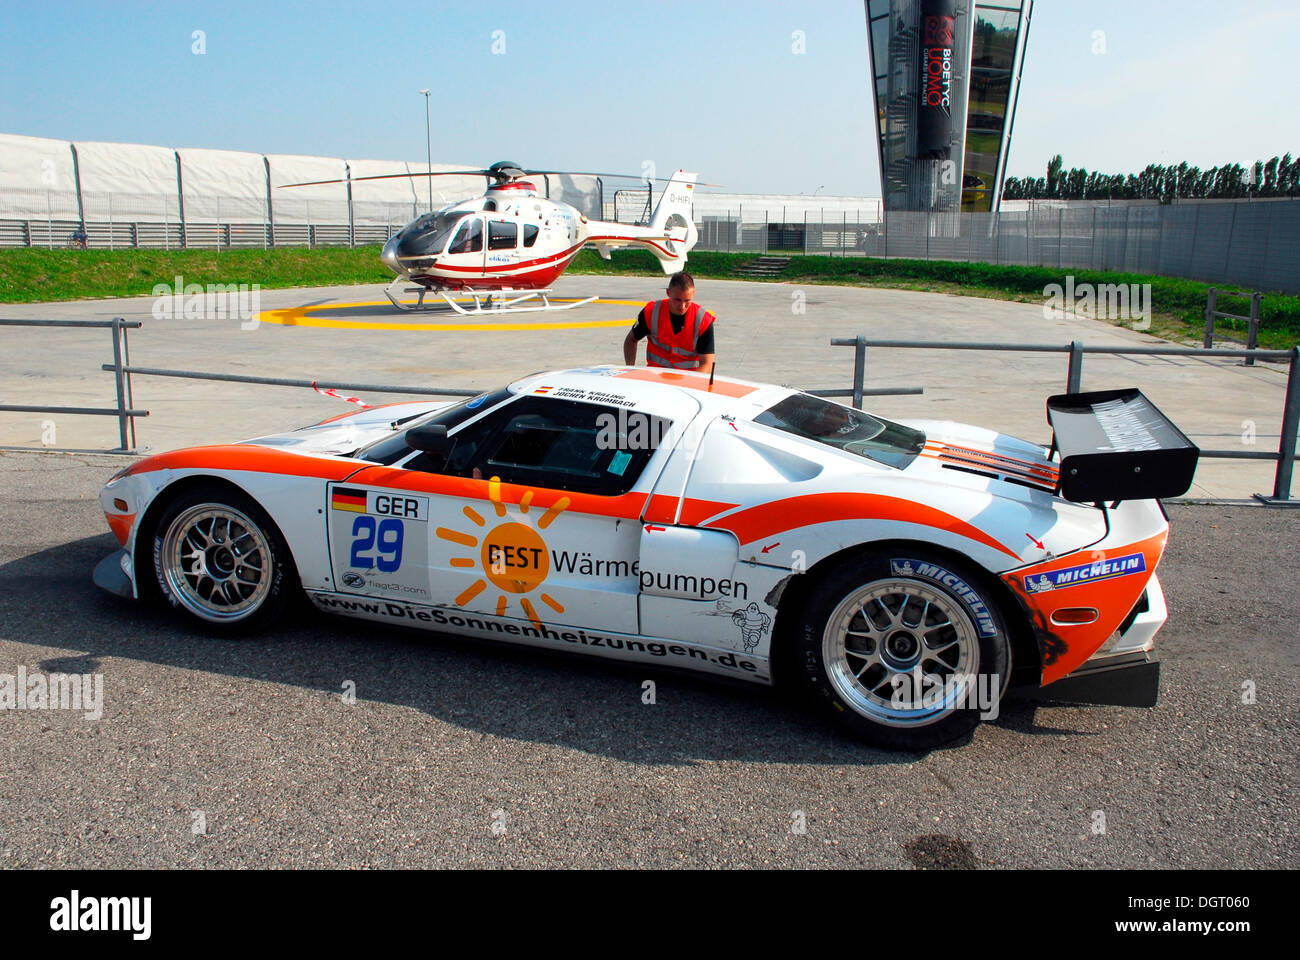 Ford Gt  Fia Gt Series With Drivers Kralingen And Krumbach Adria Raceway Italy Europe